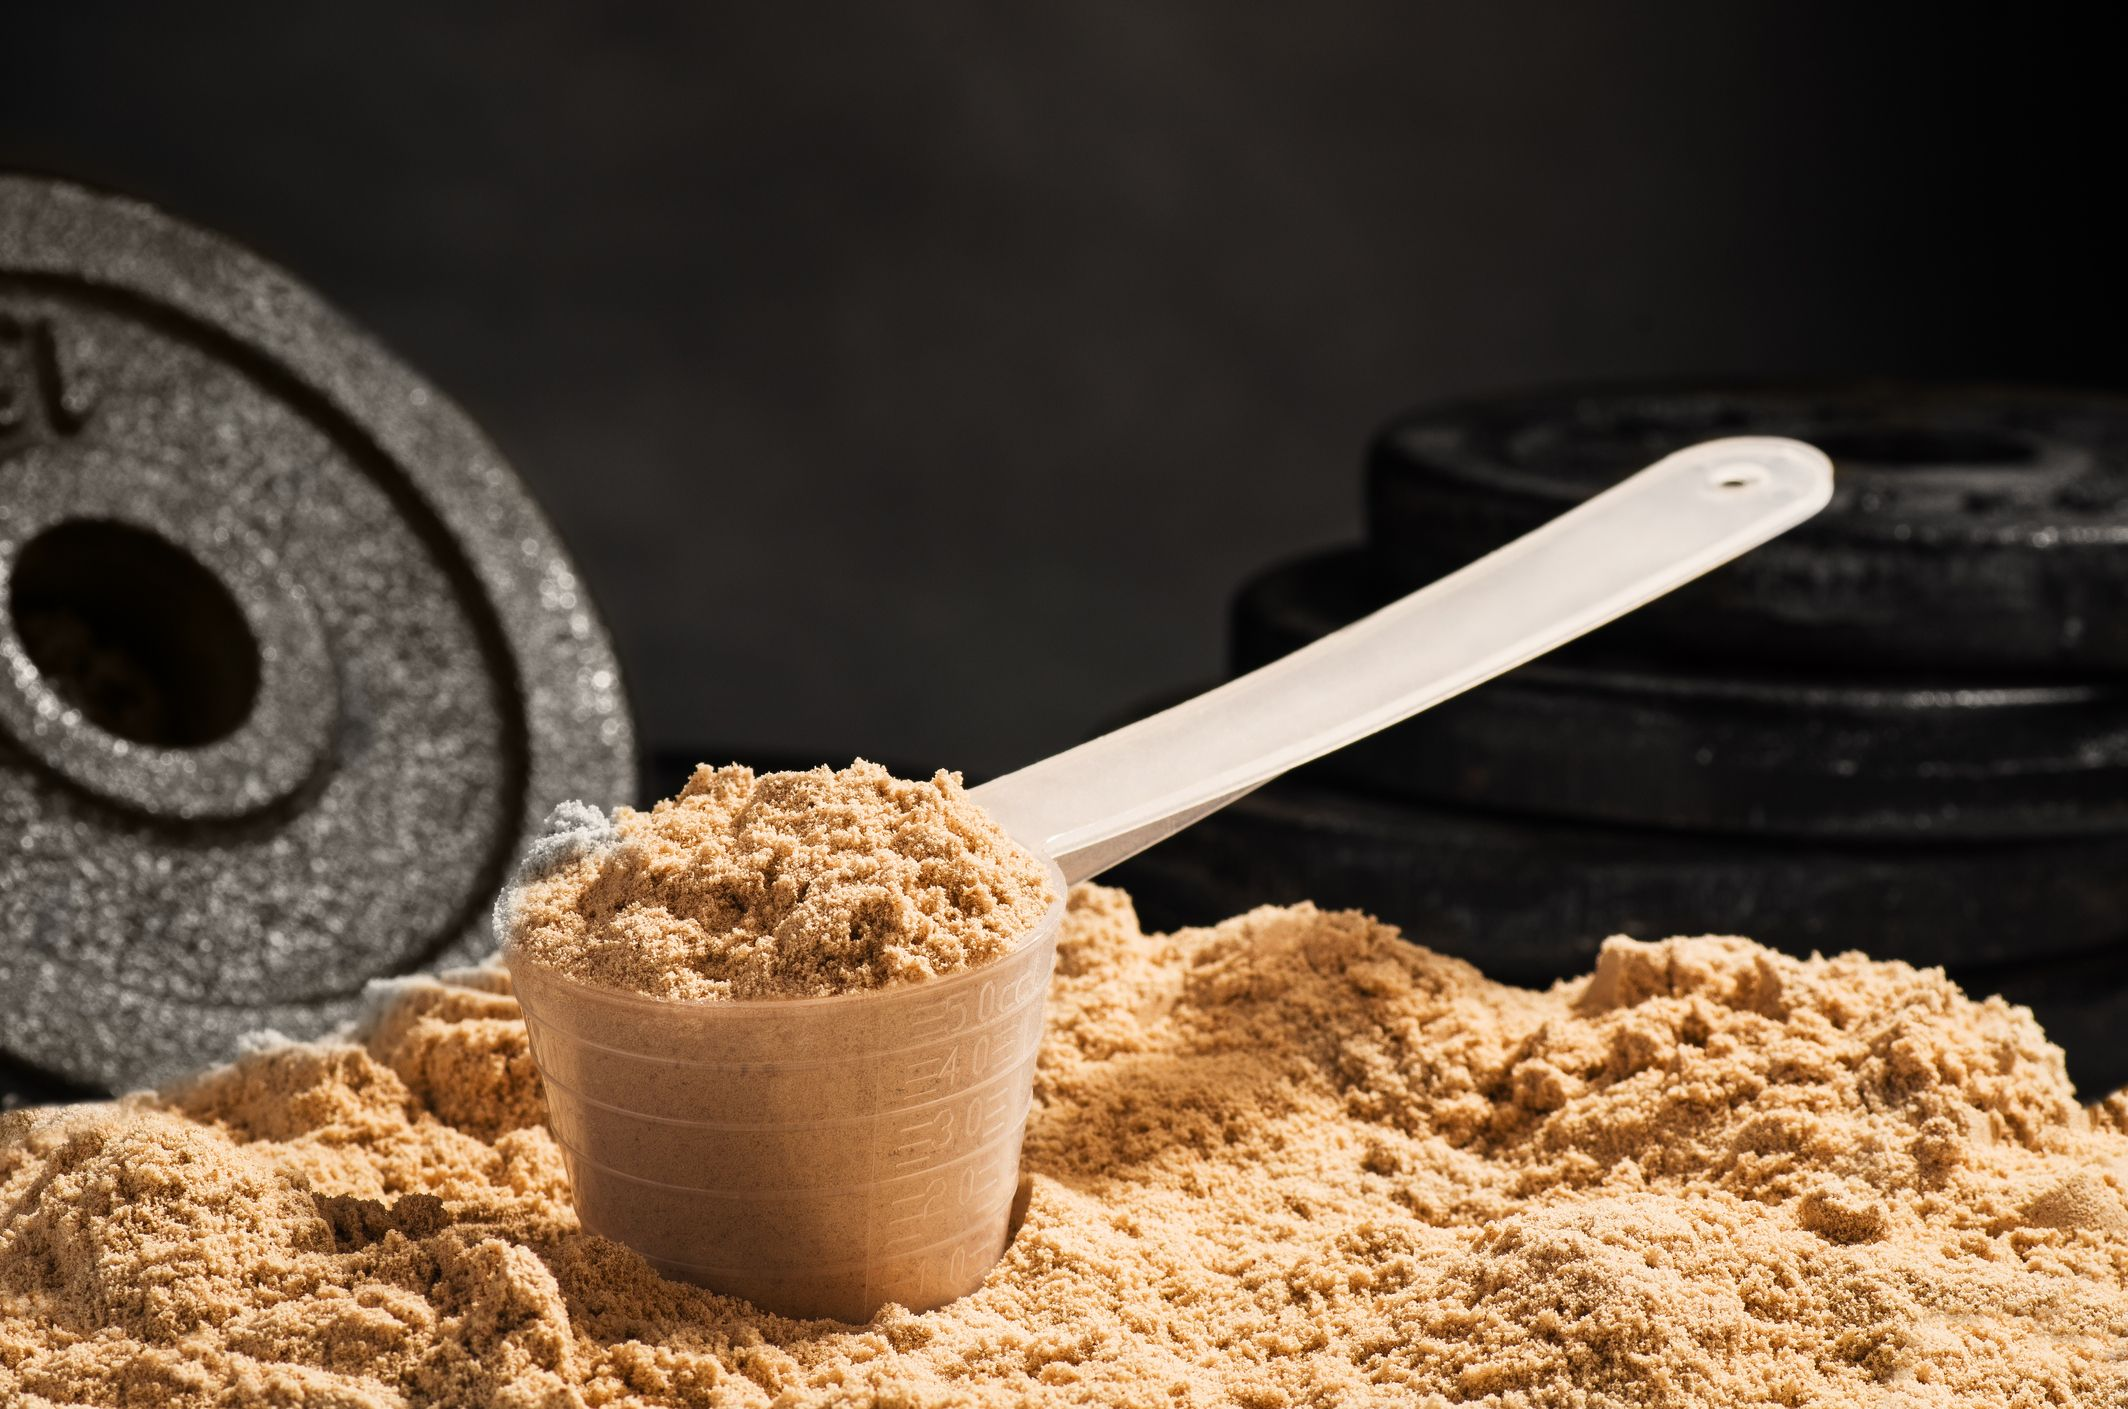 11 Whey Protein Powders to Add More Muscle